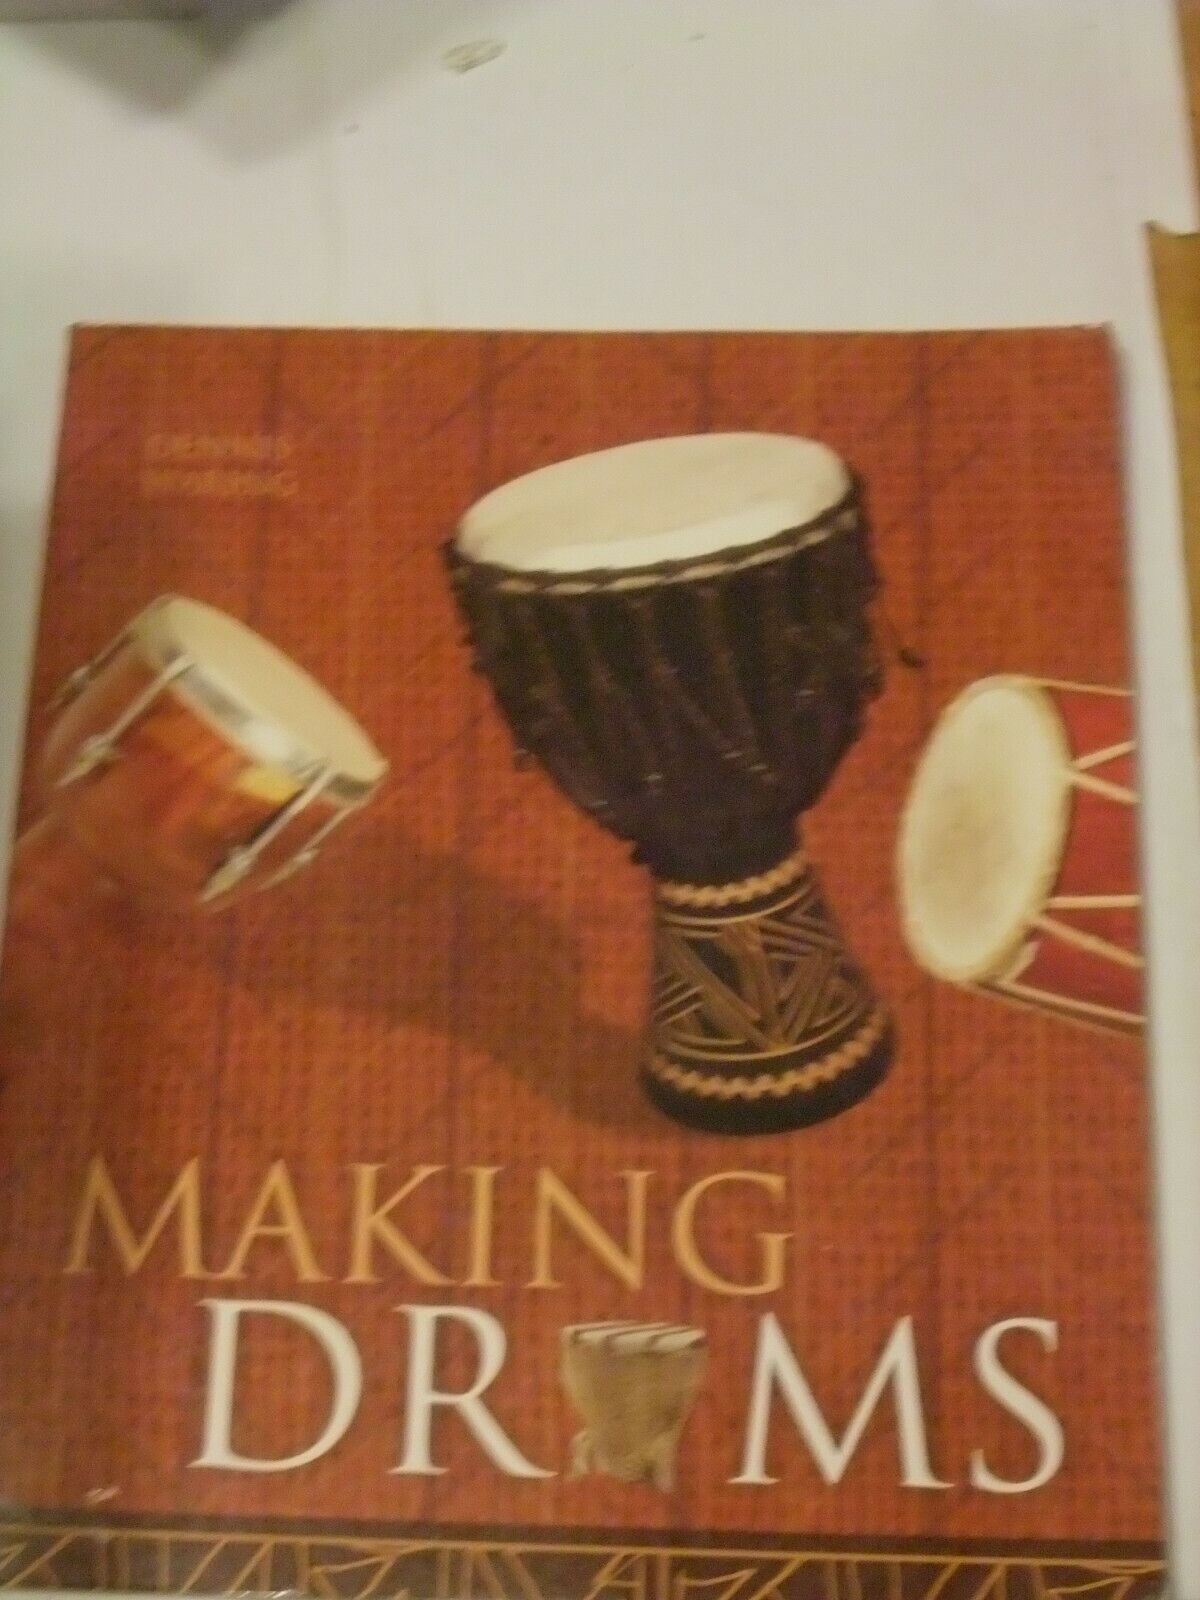 Primary image for Making Drums by Dennis Waring